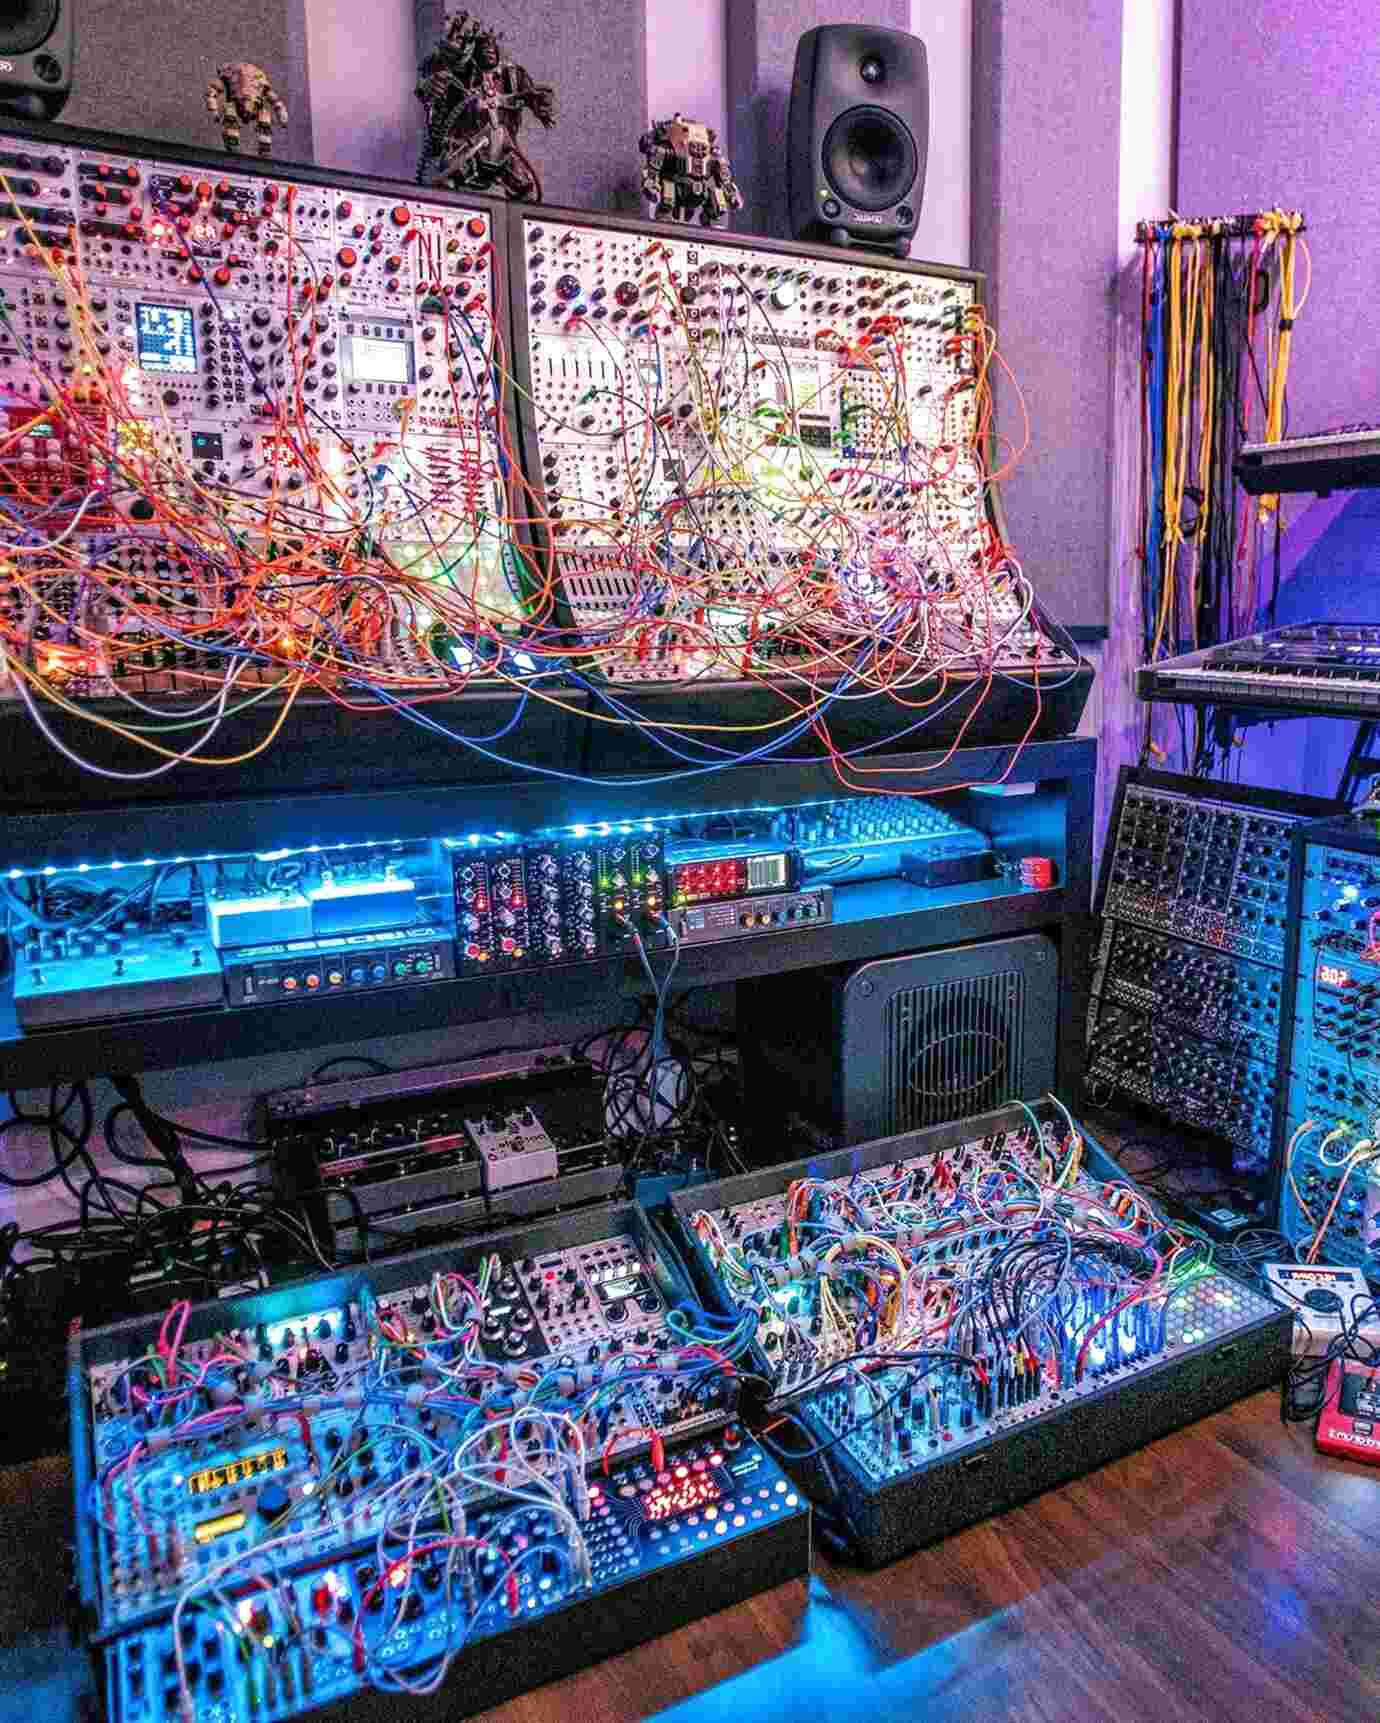 modular synth for sale